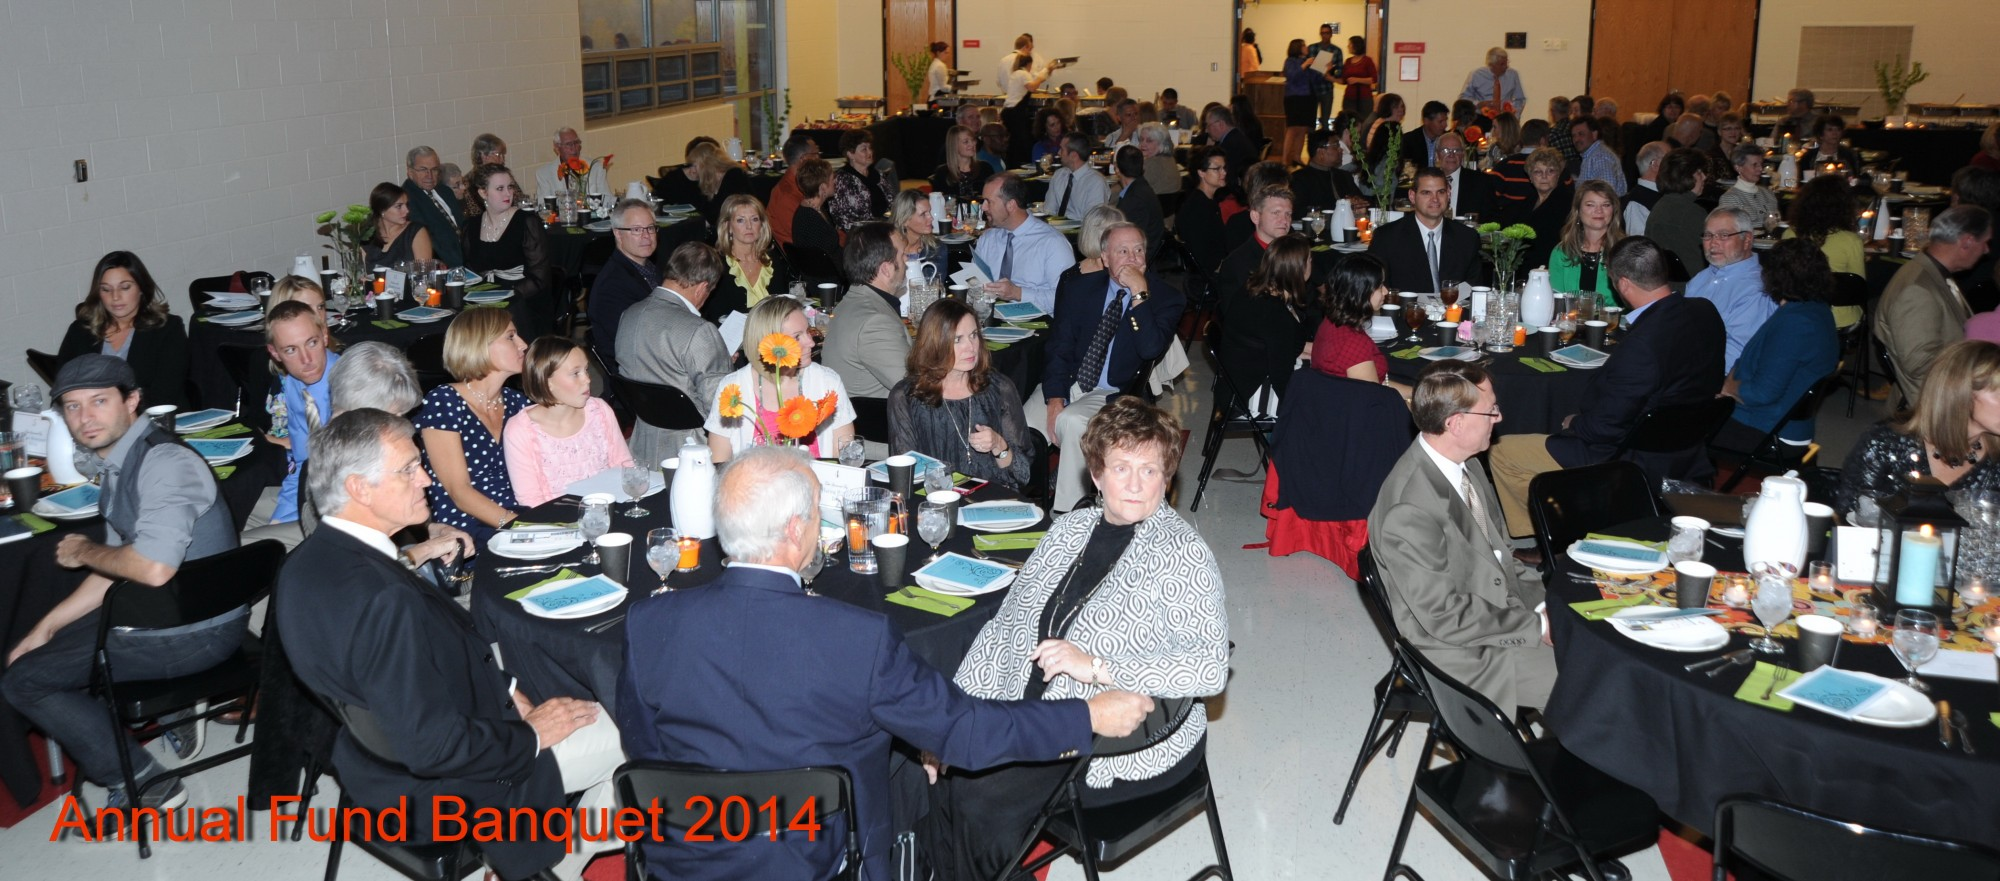 Annual Fund Banquet 2014